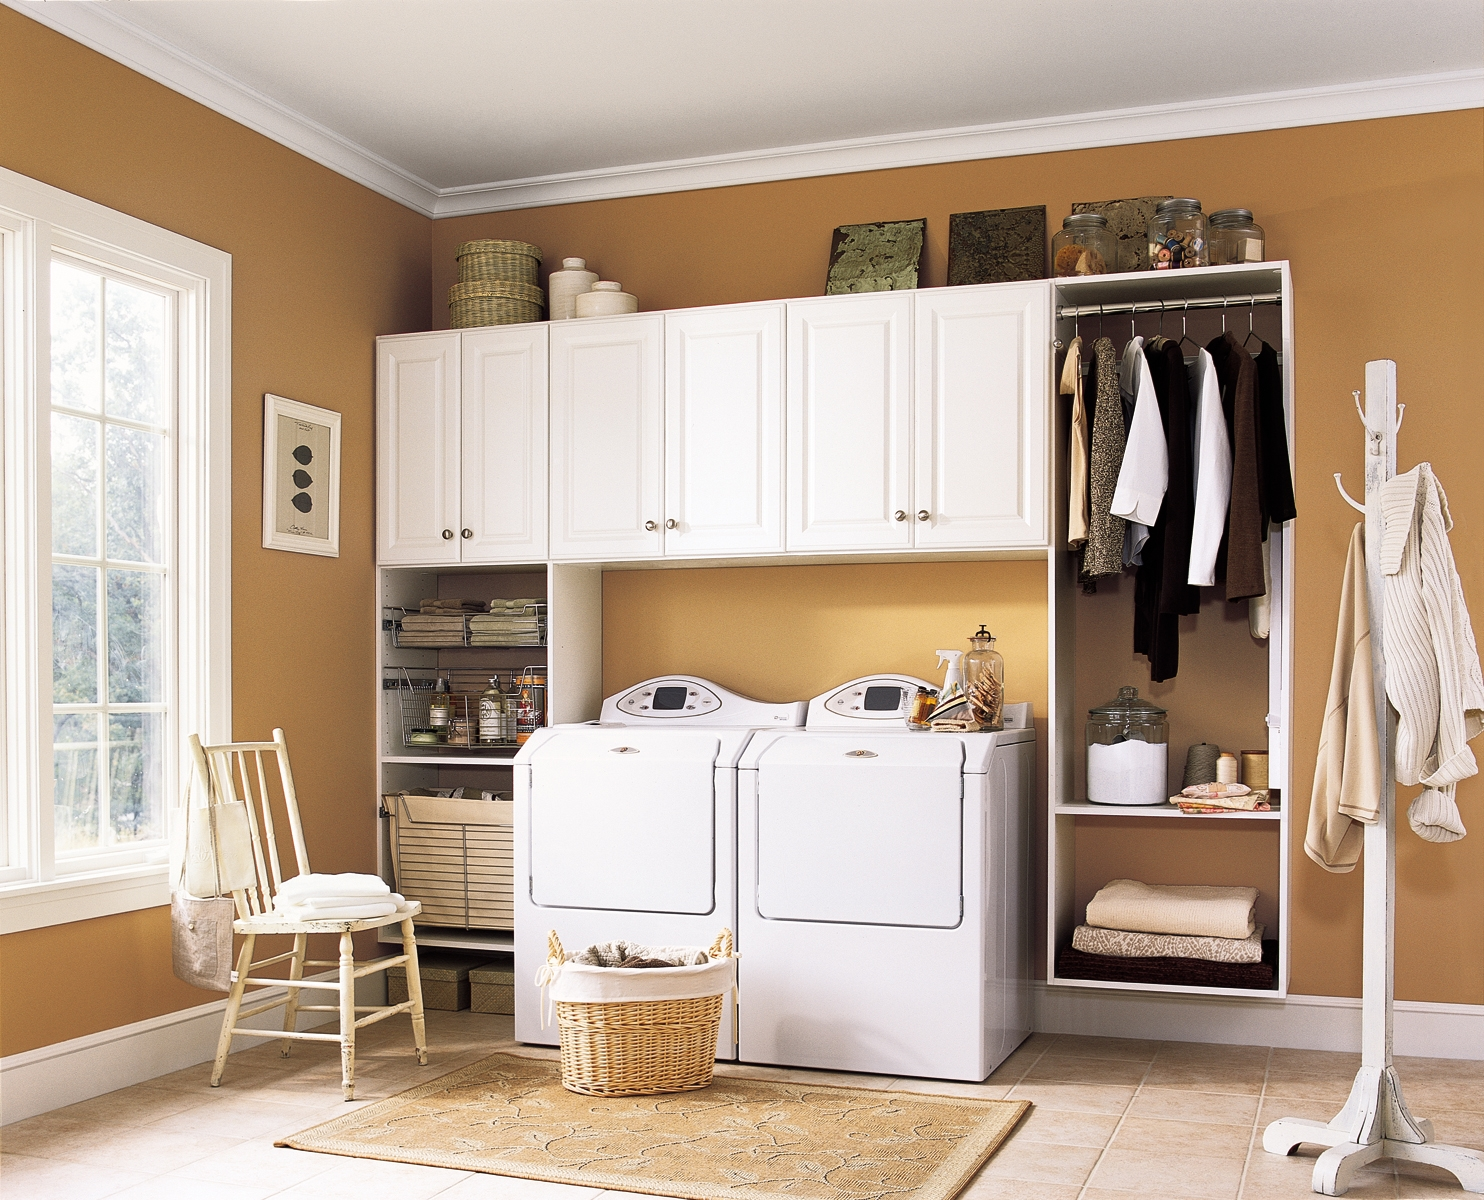 Laundry room storage organization and inspiration Laundry room design